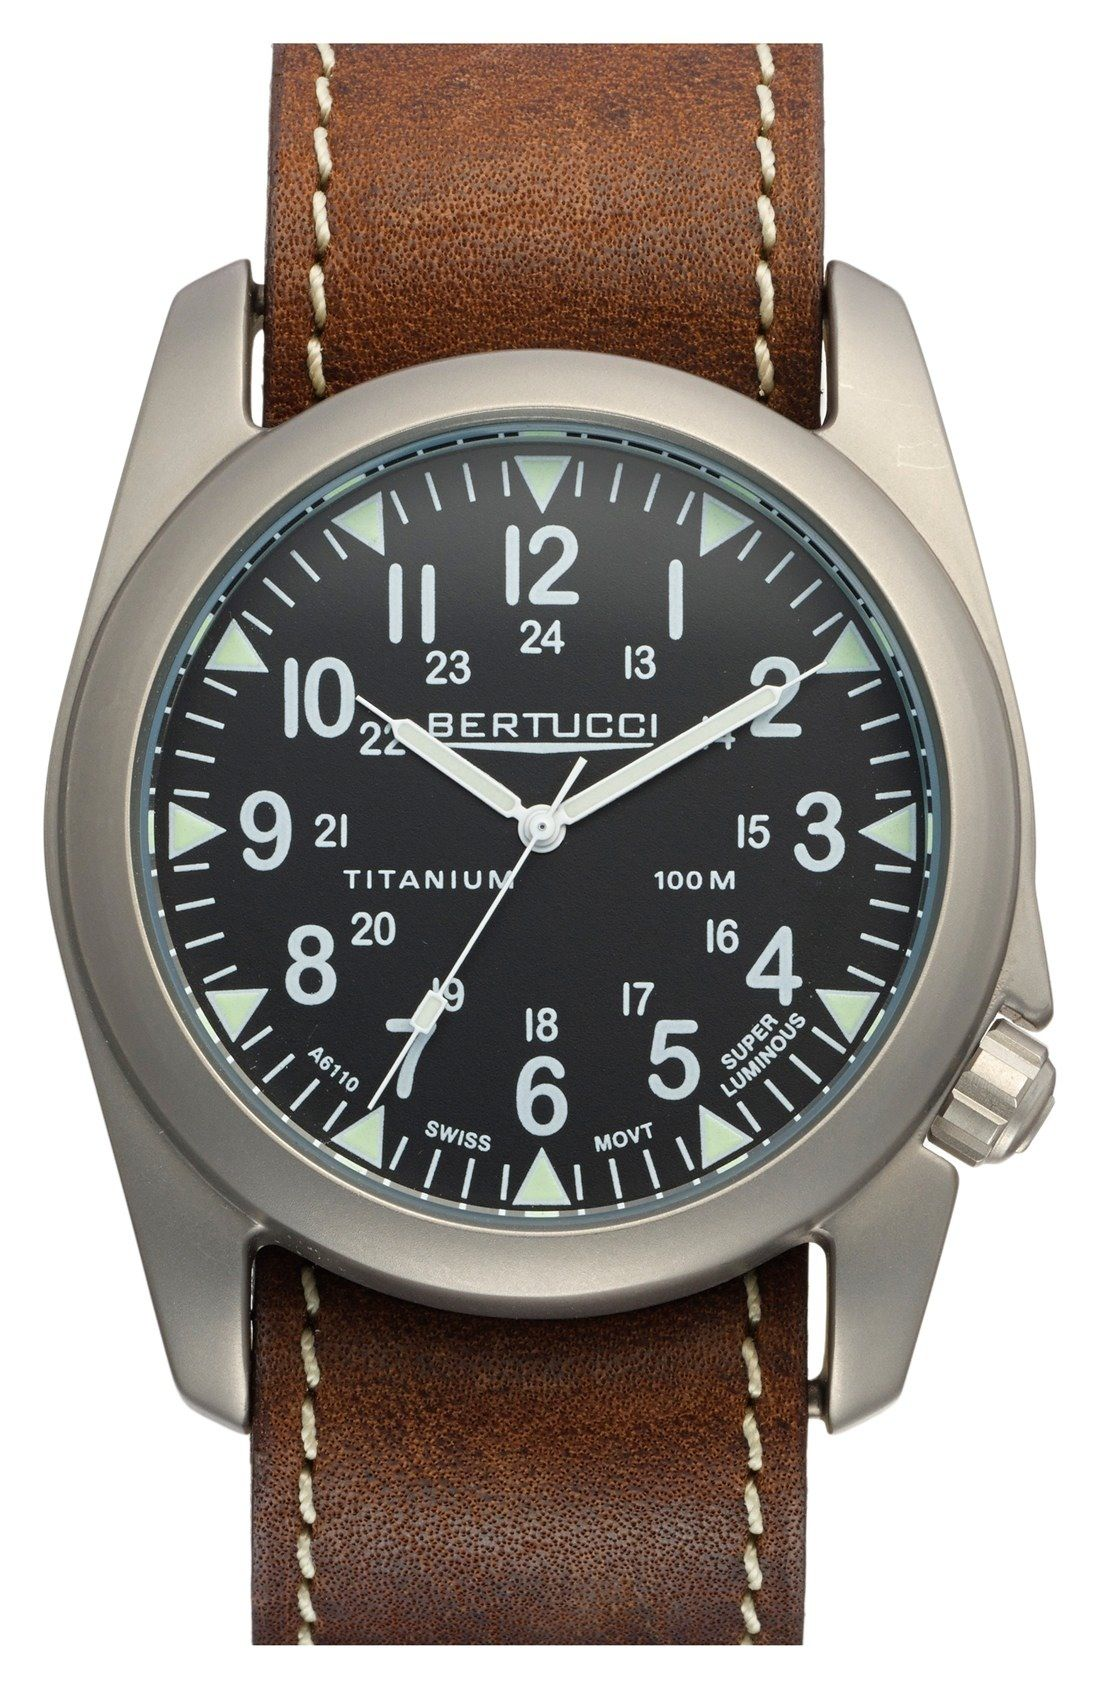 bertucci watches a 4t vintage yankee leather strap watch 44mm bertucci watches vintage yankee leather strap watch available at mens watches uk men black watches watch batteries ad